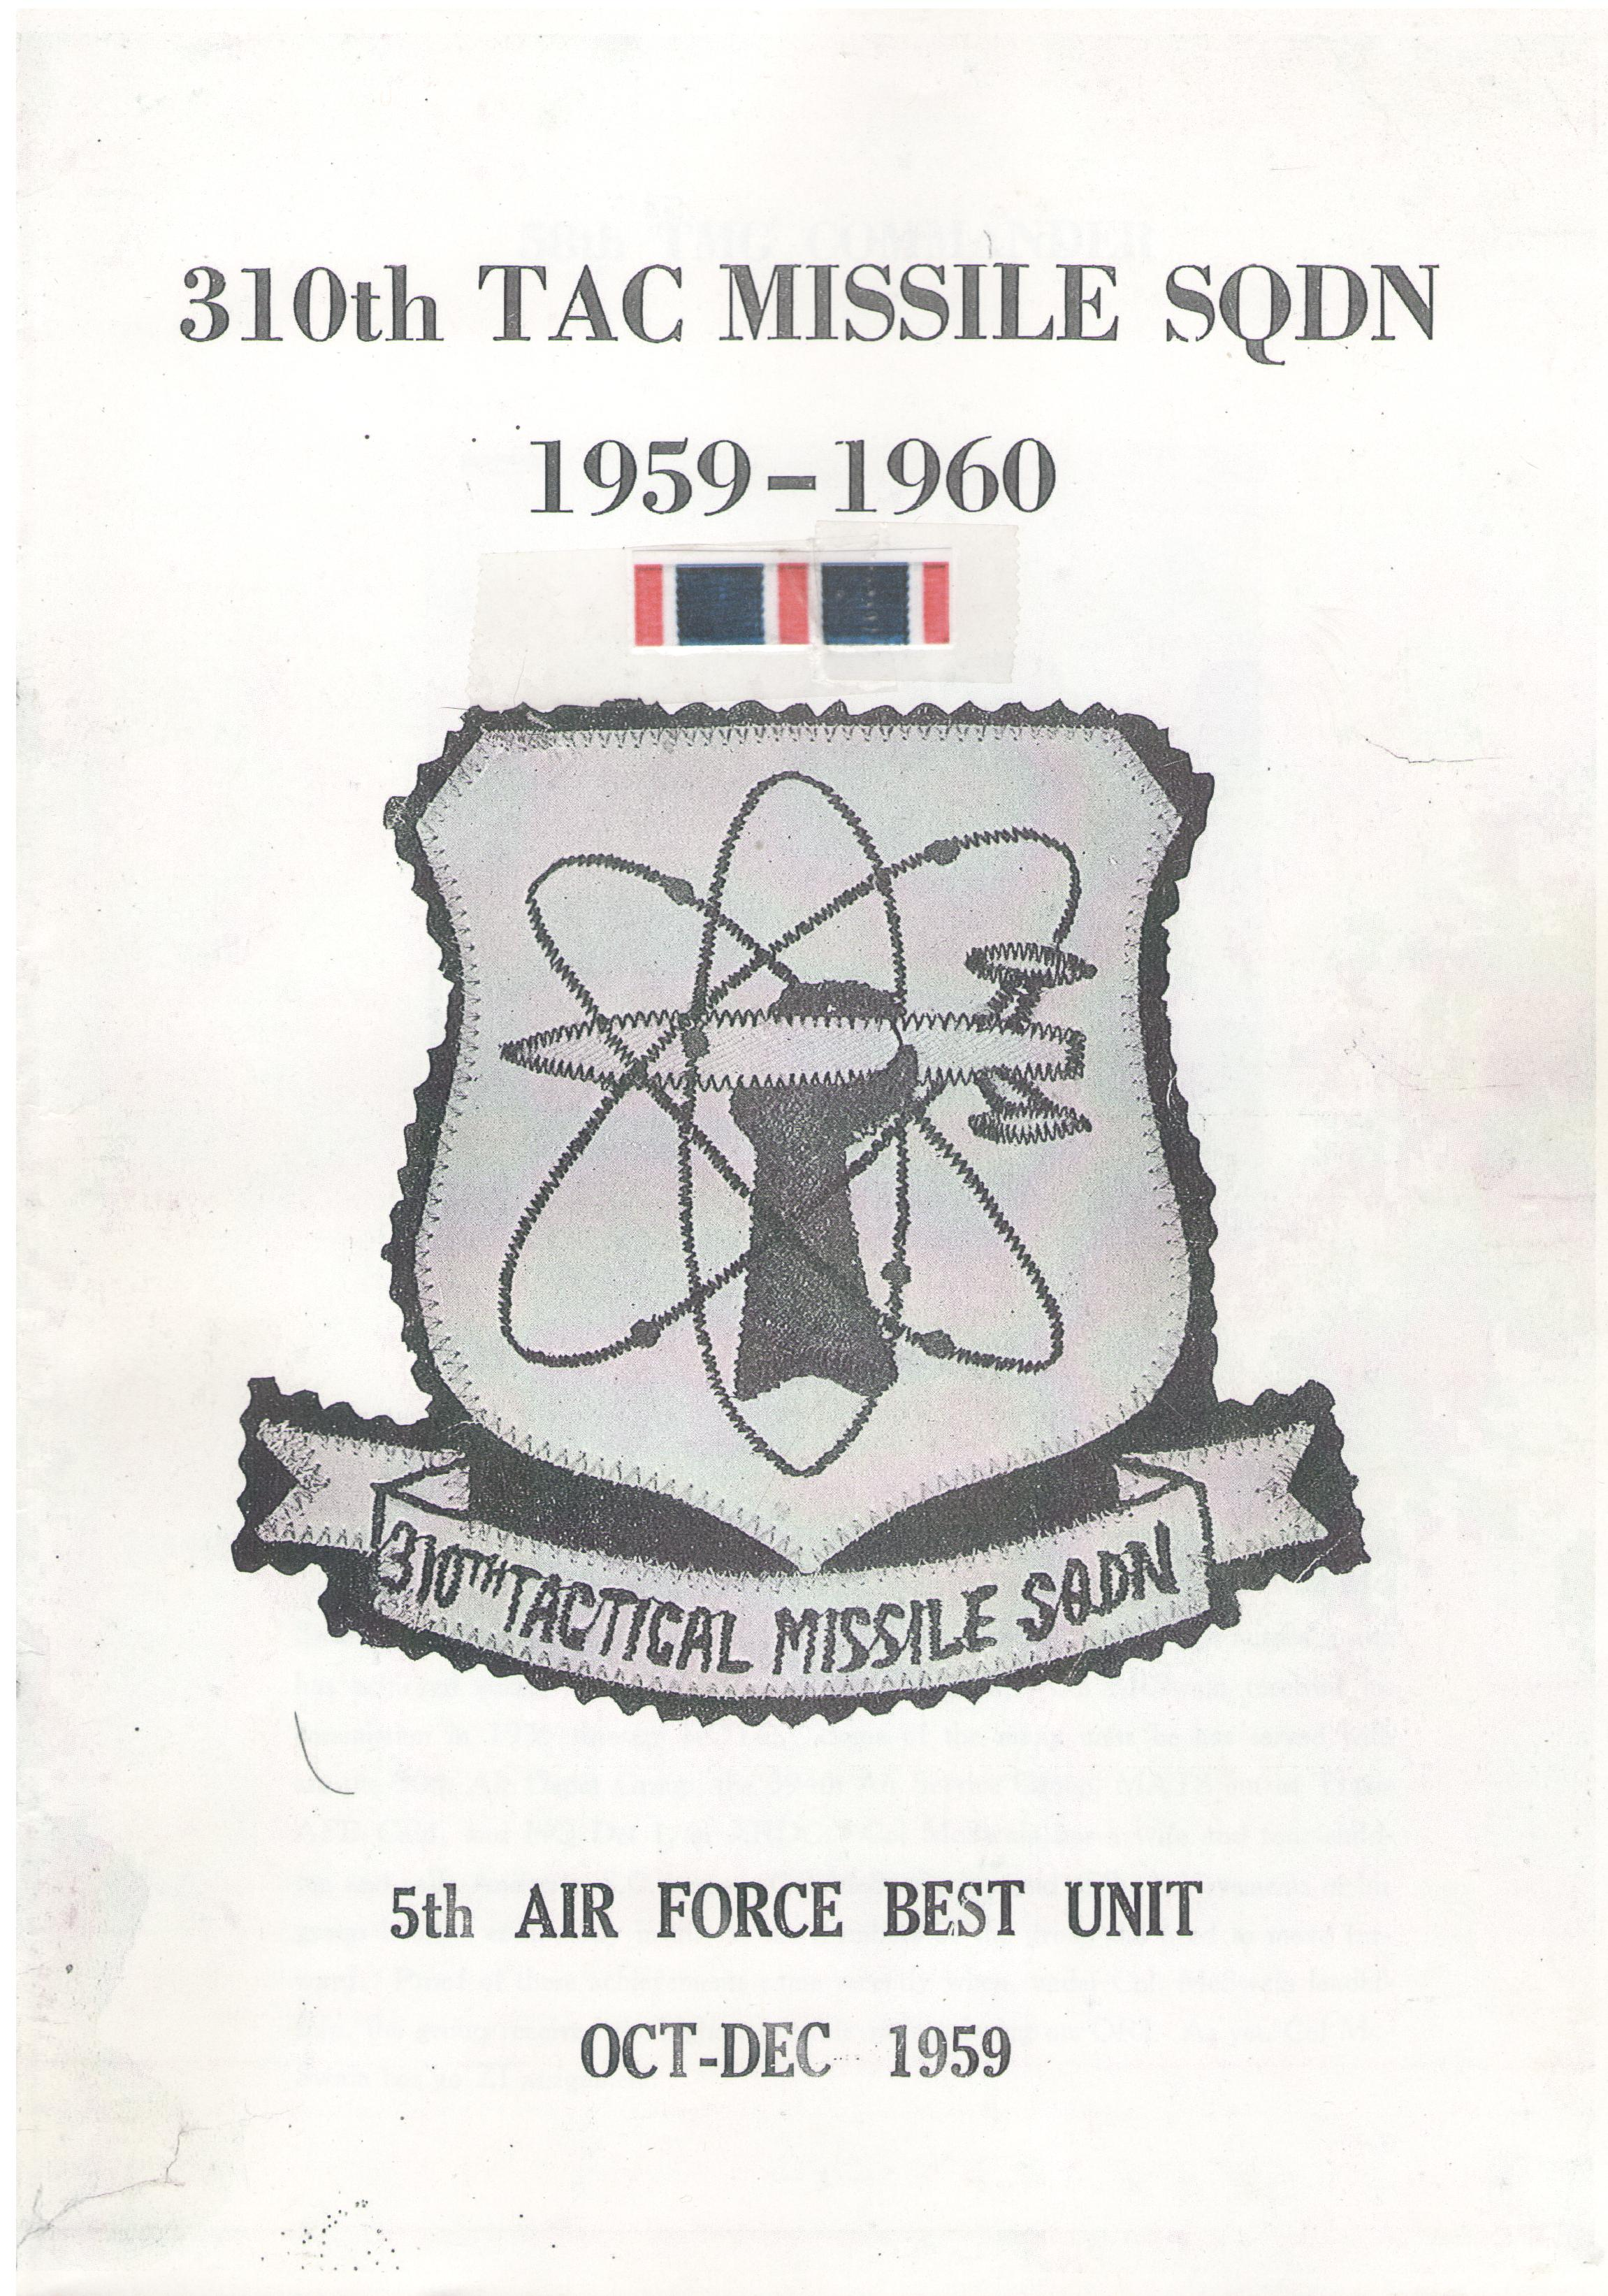 310th TAC Missile Squadron (1959/60)